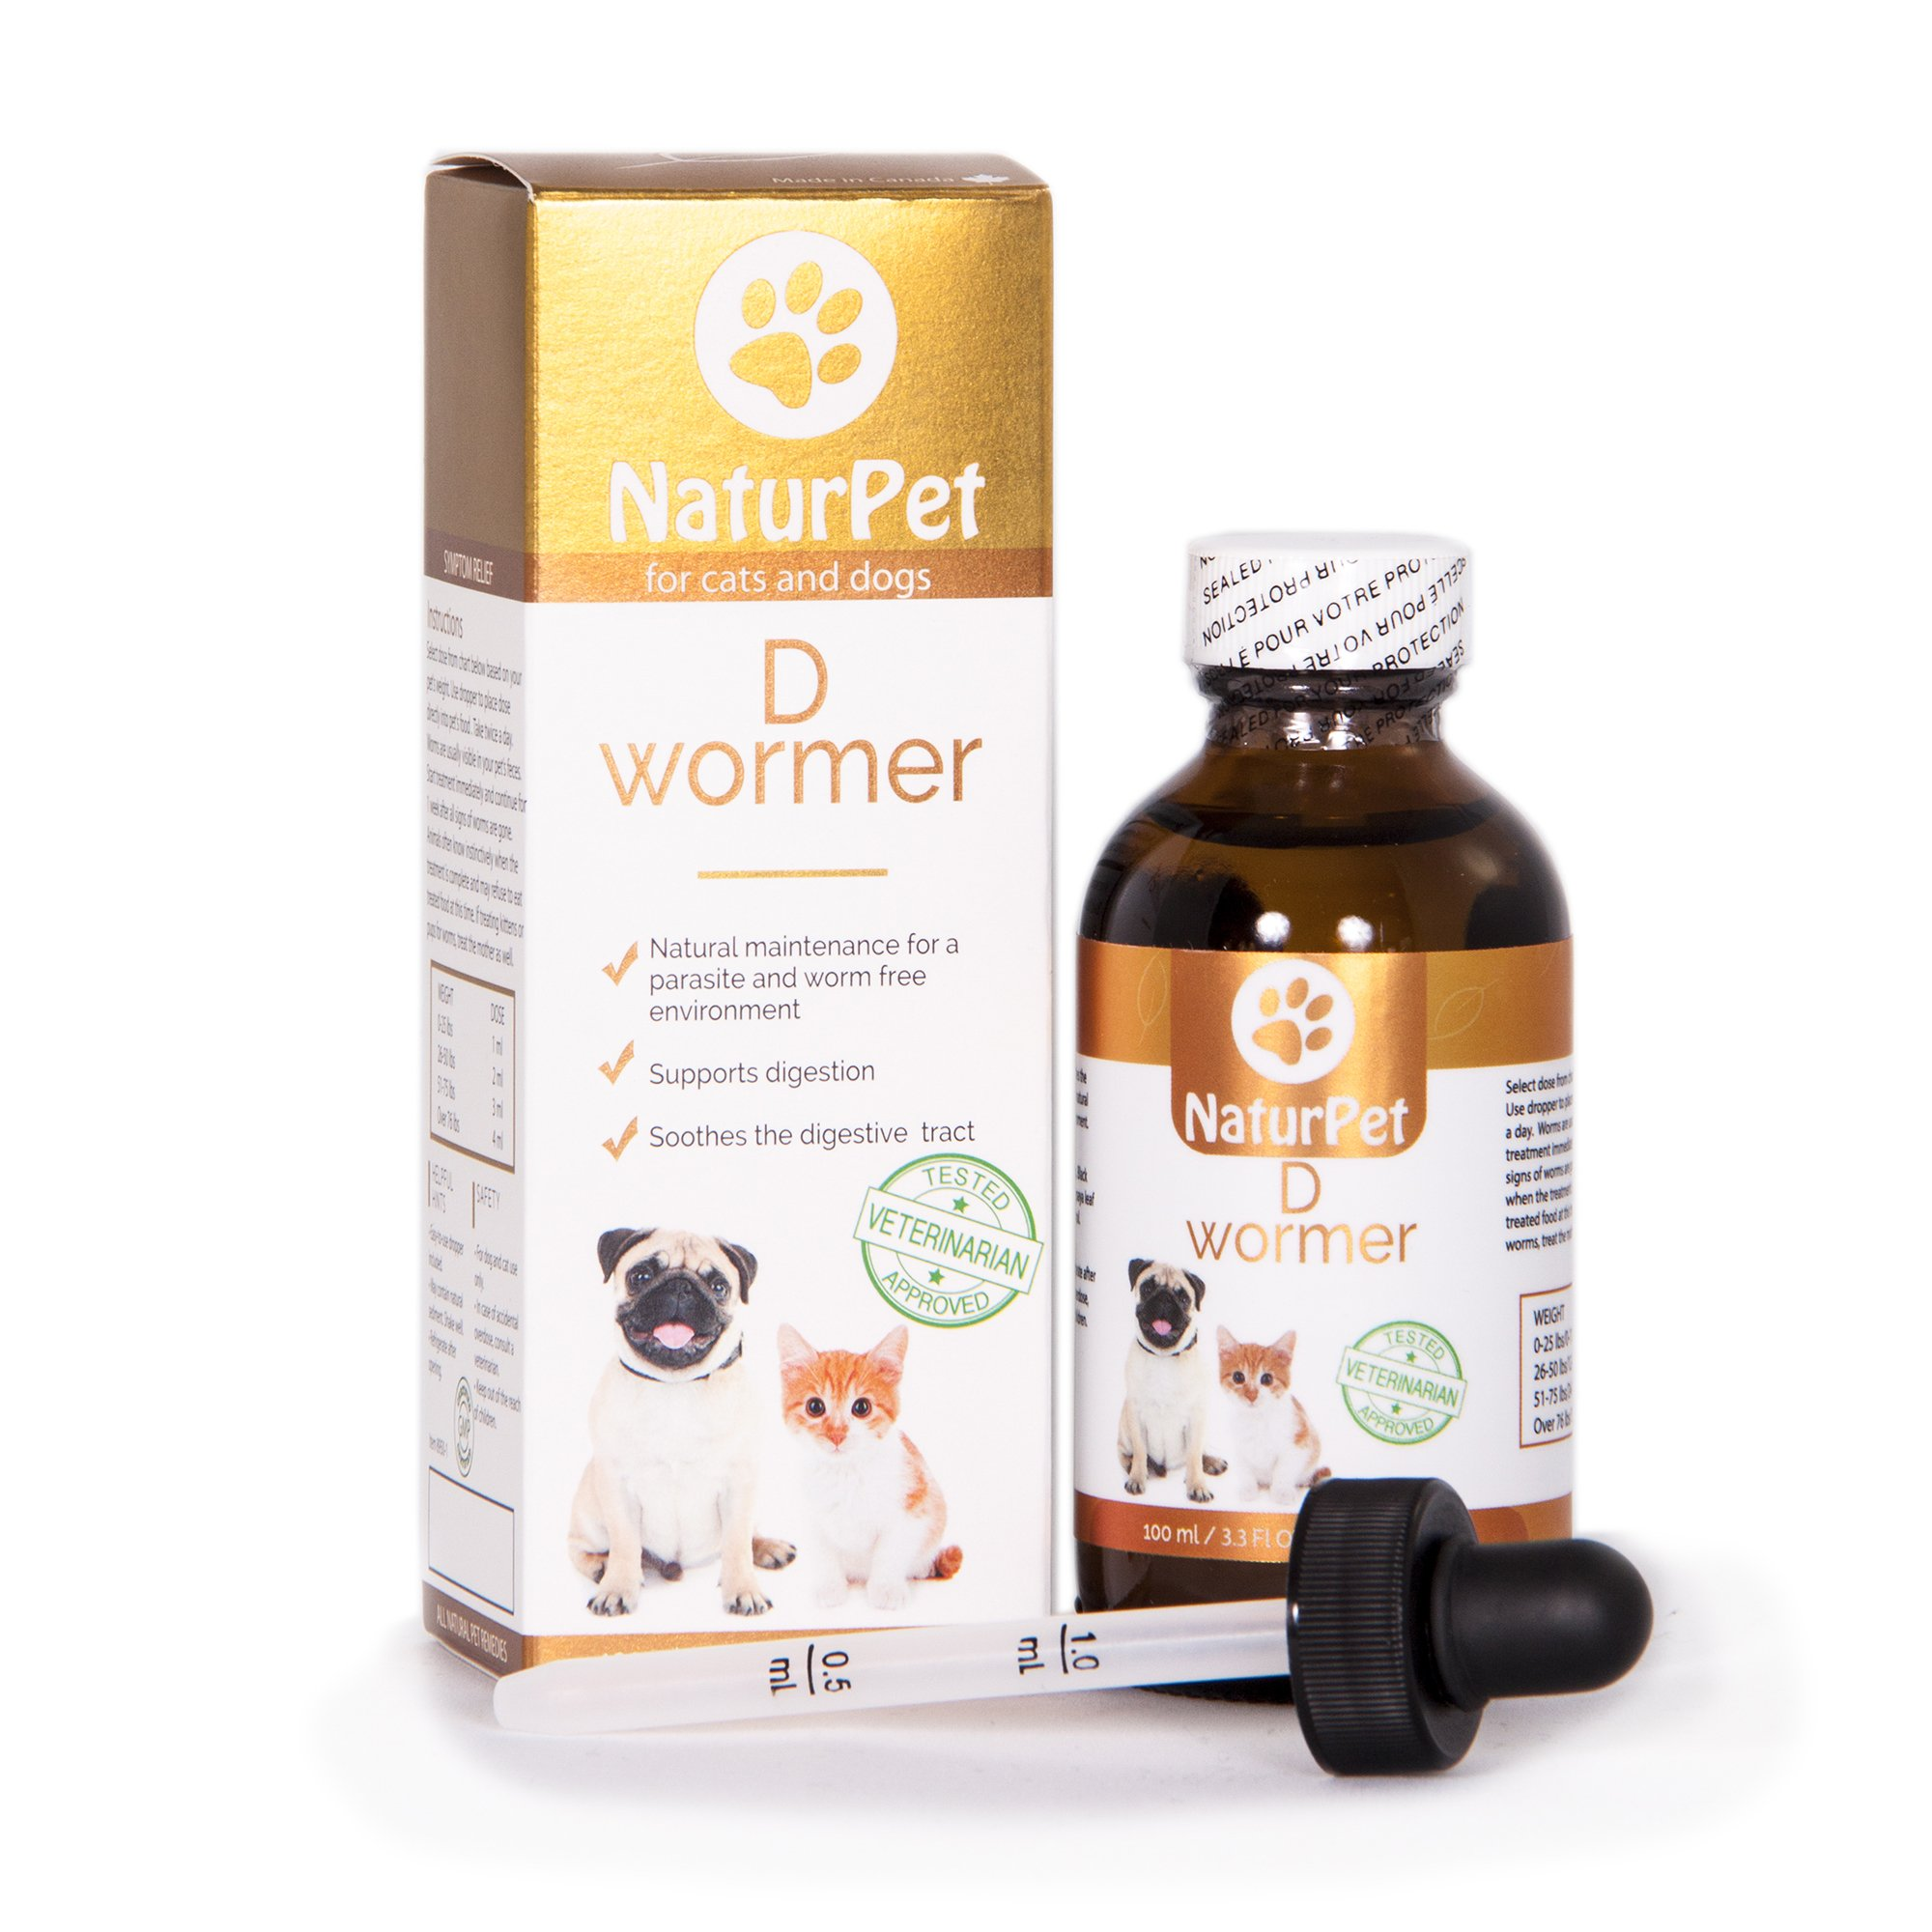 NaturPet D Wormer | 100% Natural, Safe, Effective Dewormer for Dogs and Cats | 3.3 oz Liquid Herbal Dewormer | The Only Natural Pet Deworming Medicine That soothes & Heals The Digestive Tract by NaturPet